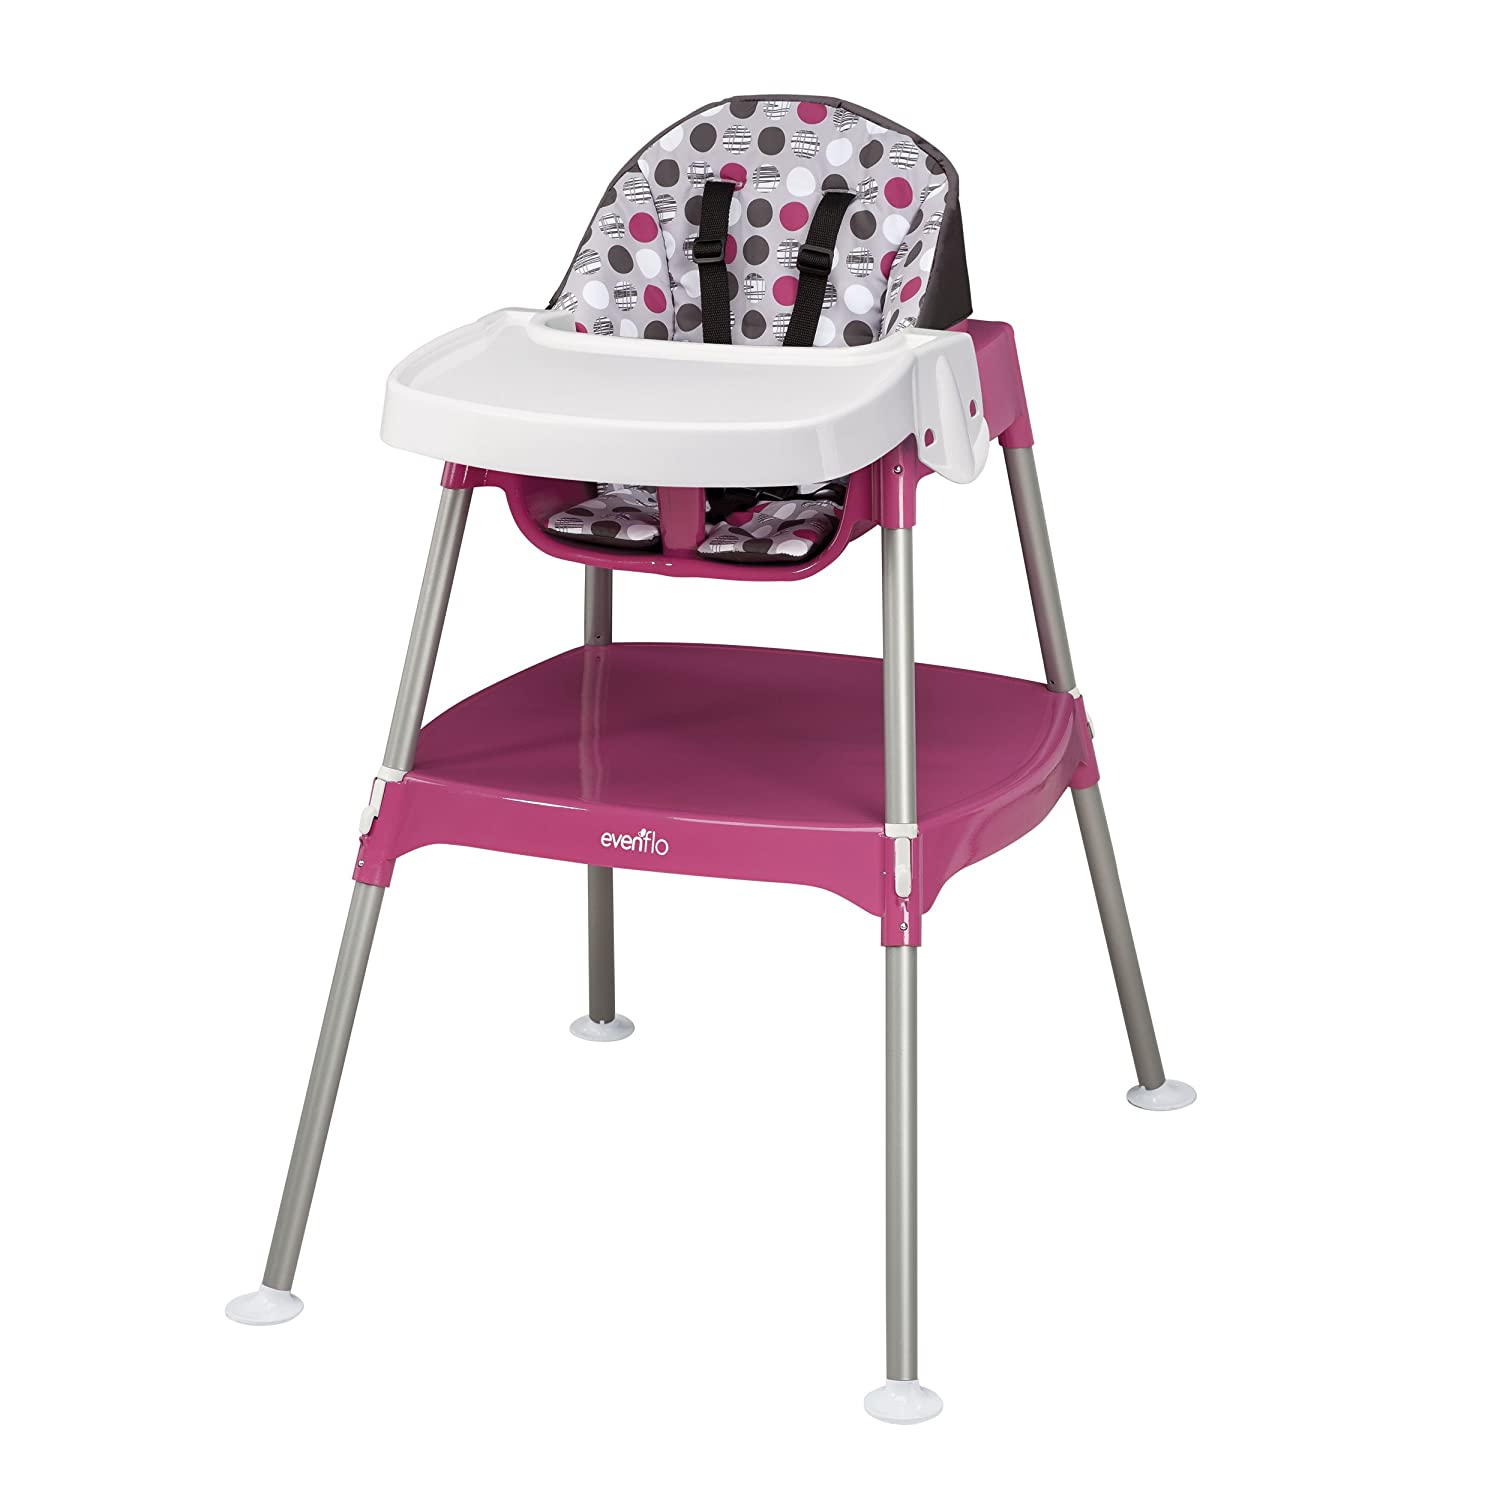 Evenflo Convertible High Chair, Dottie Rose, 11.6-Pounds 28111271